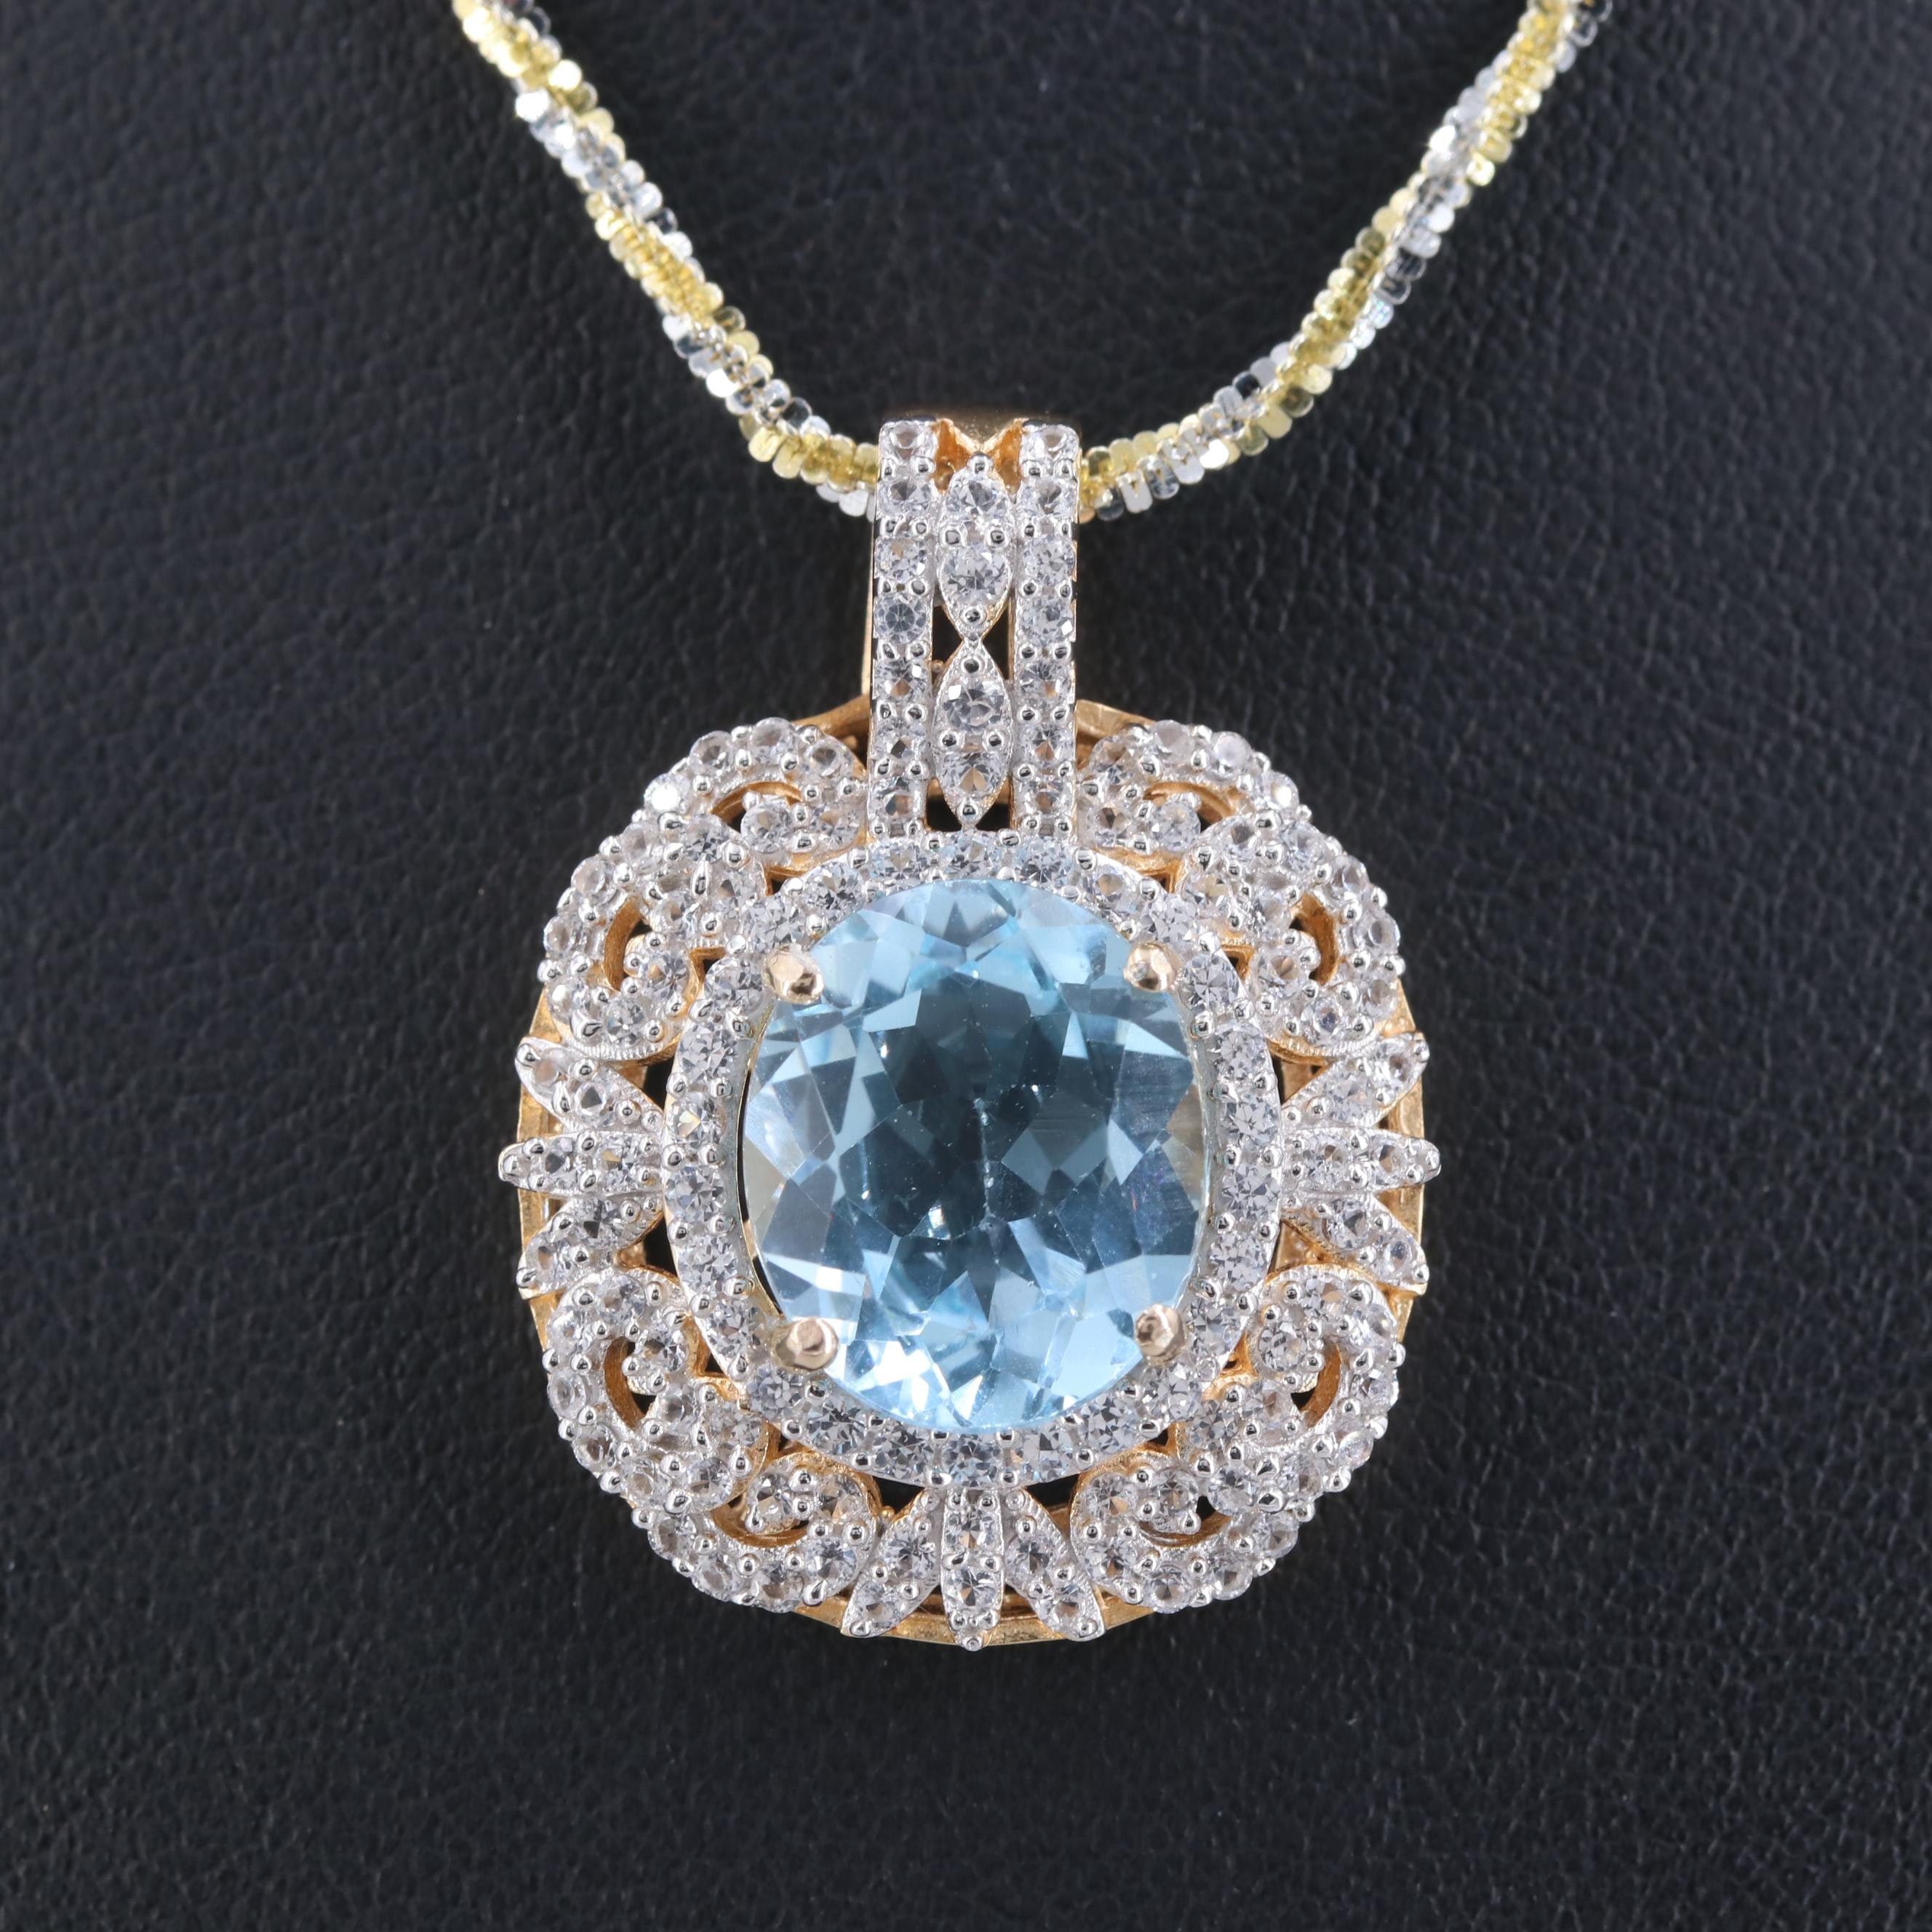 Gold Wash on Sterling Topaz and Sapphire Pendant with Two-Toned Sterling Chain